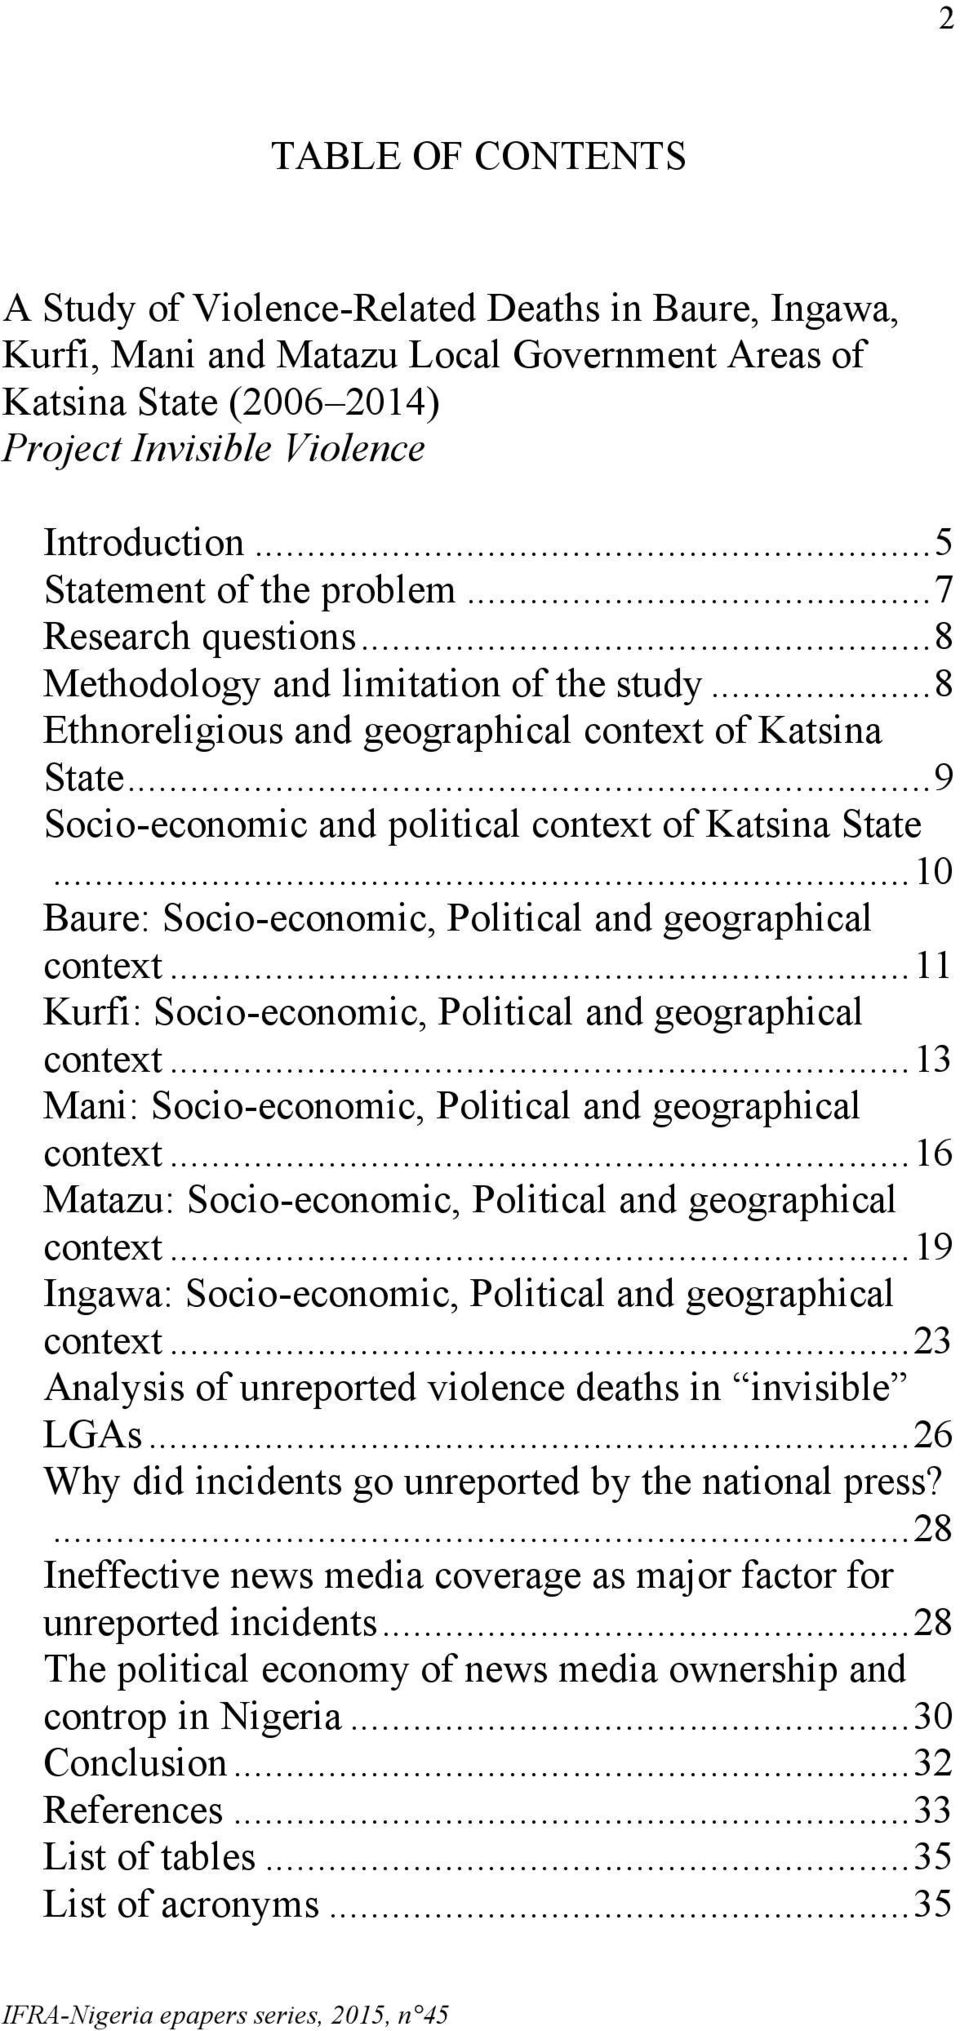 ..9 Socio-economic and political context of Katsina State...0 Baure: Socio-economic, Political and geographical context... Kurfi: Socio-economic, Political and geographical context.